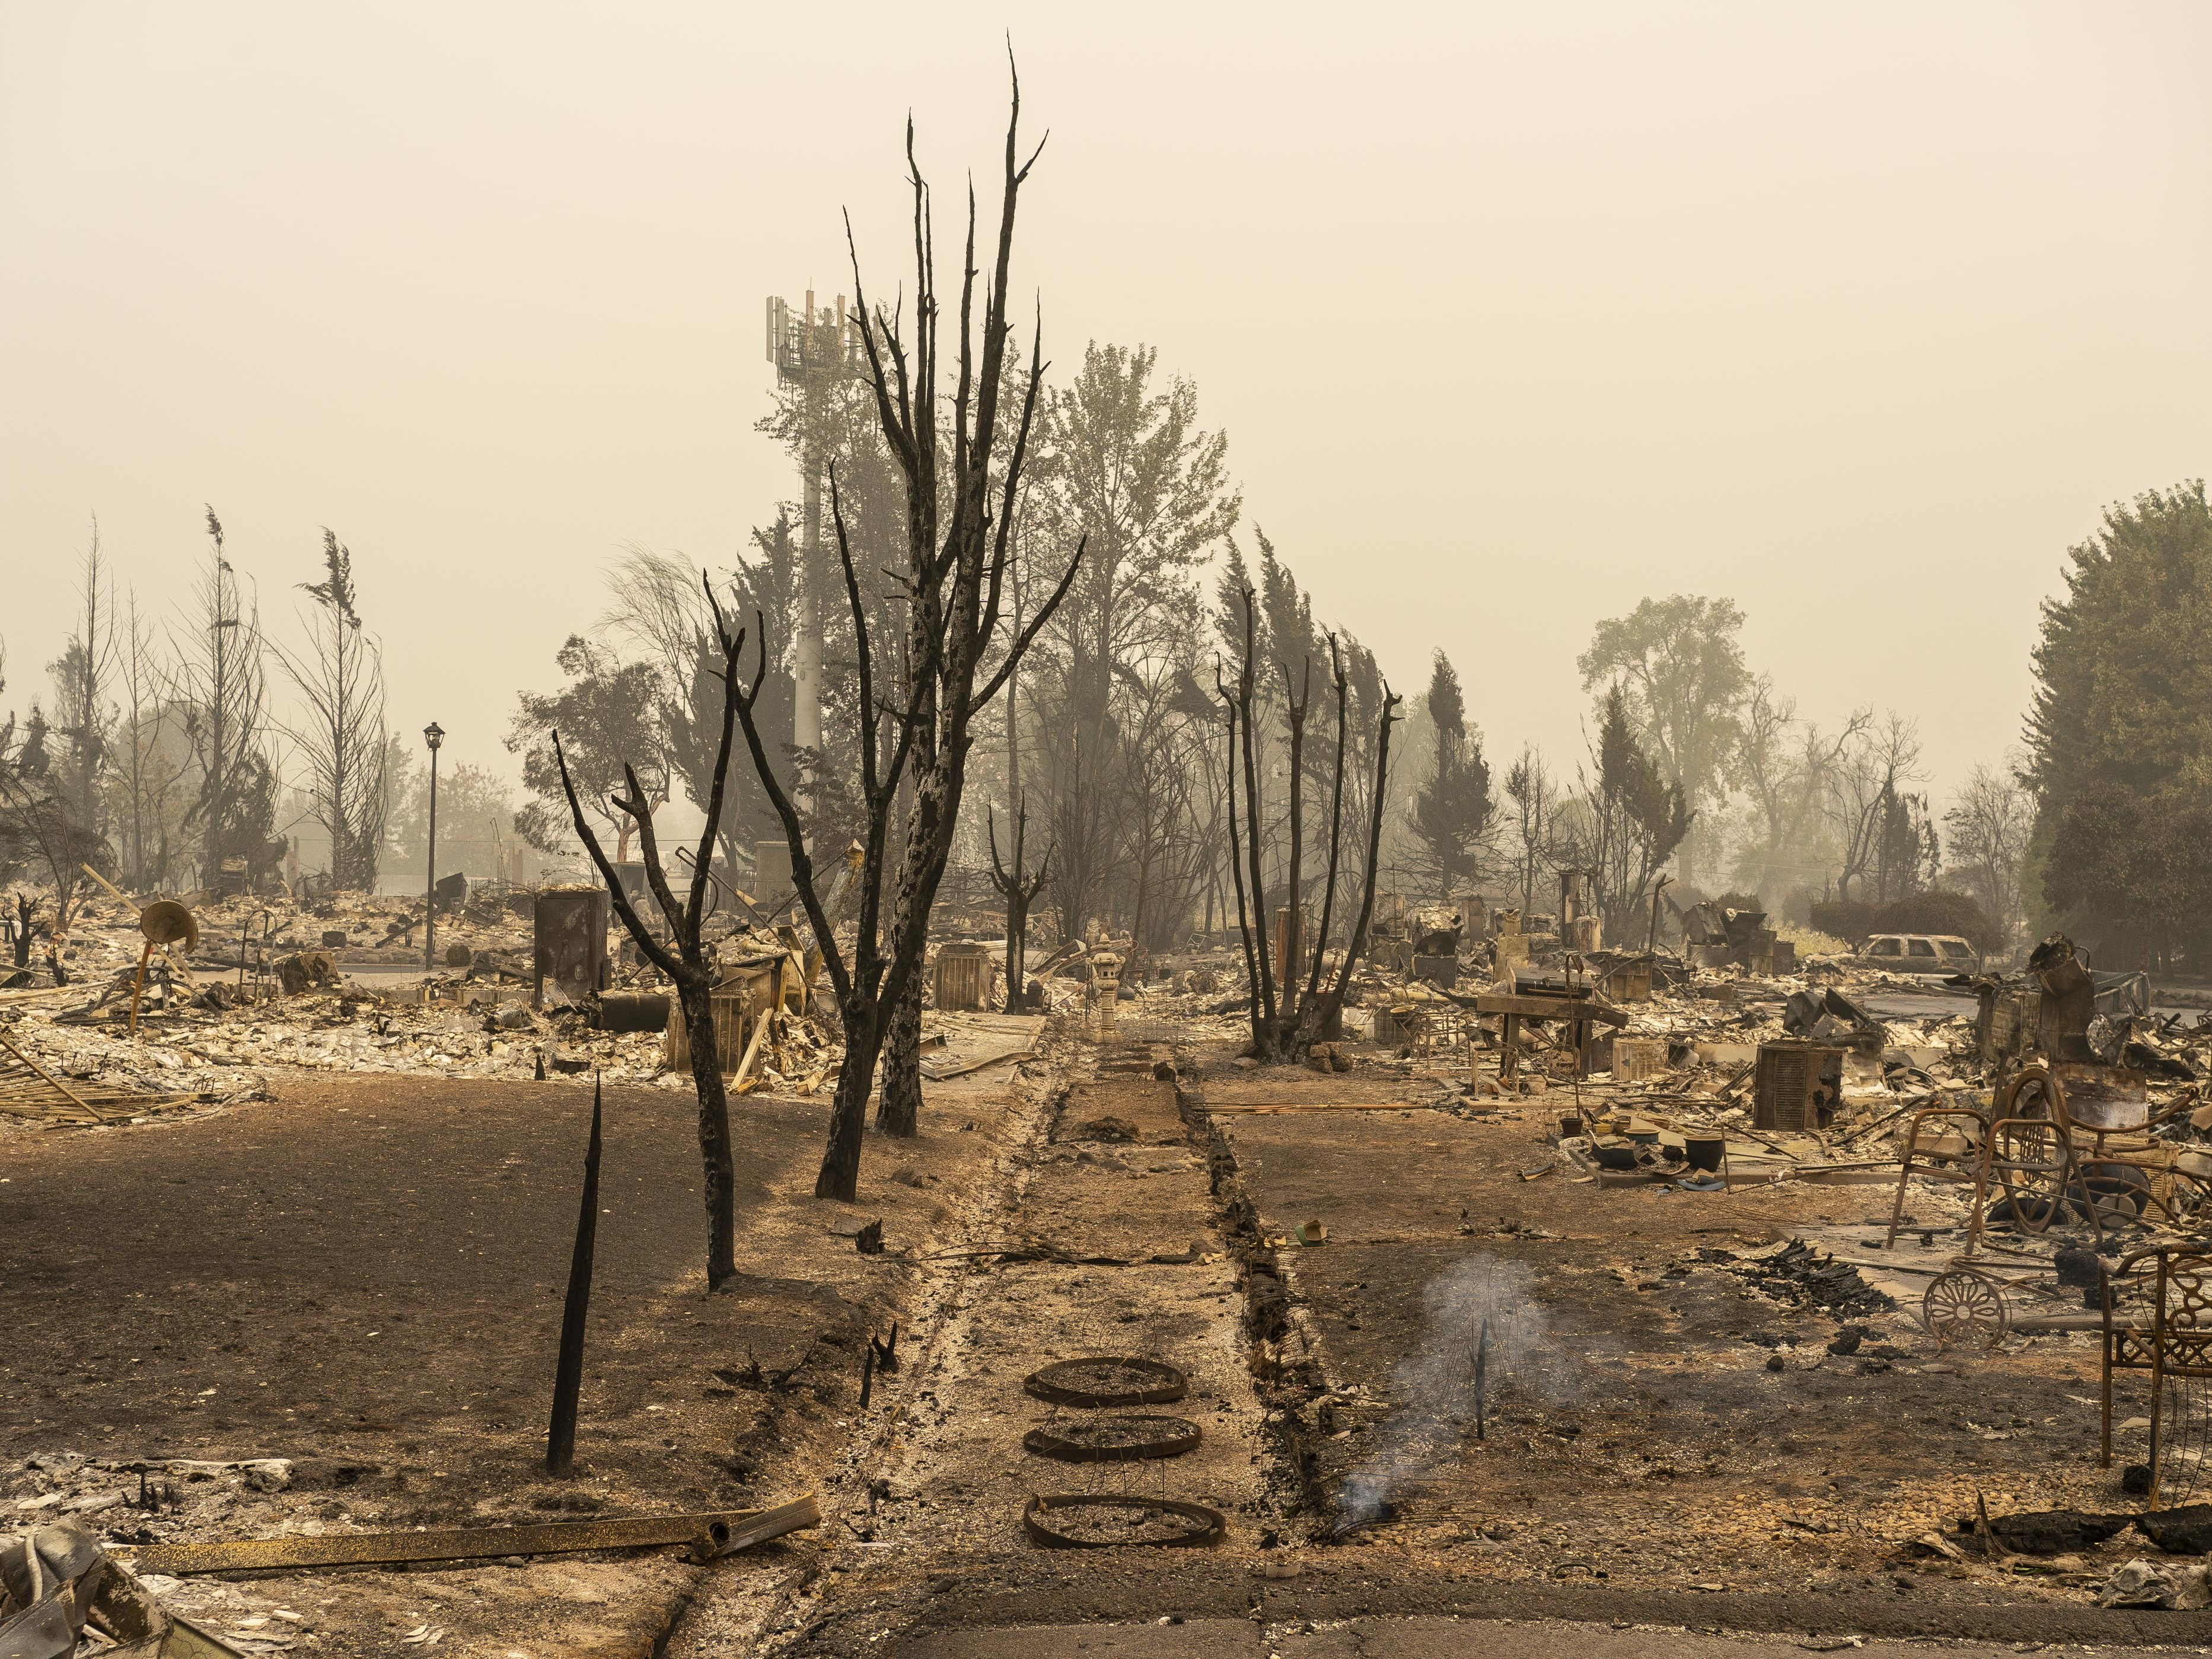 Smoke rises from the ground Sunday in a neighborhood destroyed by wildfire in Talent, Ore.